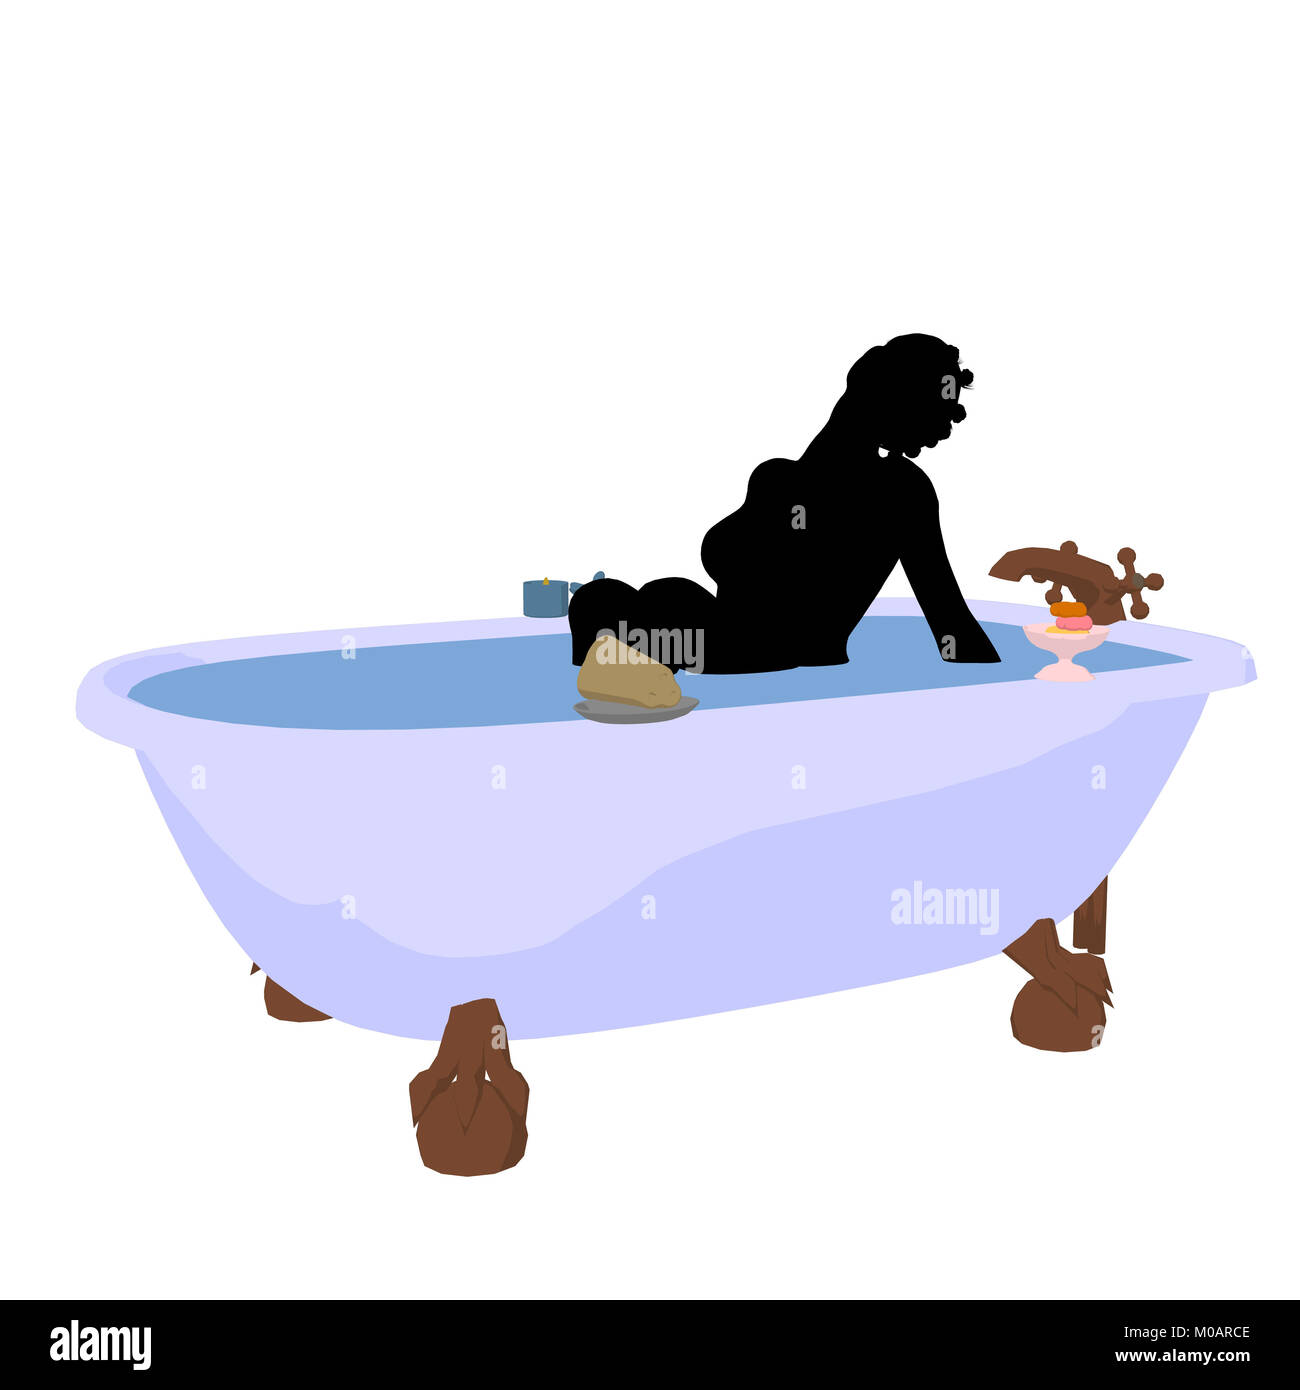 African American Woman In Bathtub Stock Photos & African American ...